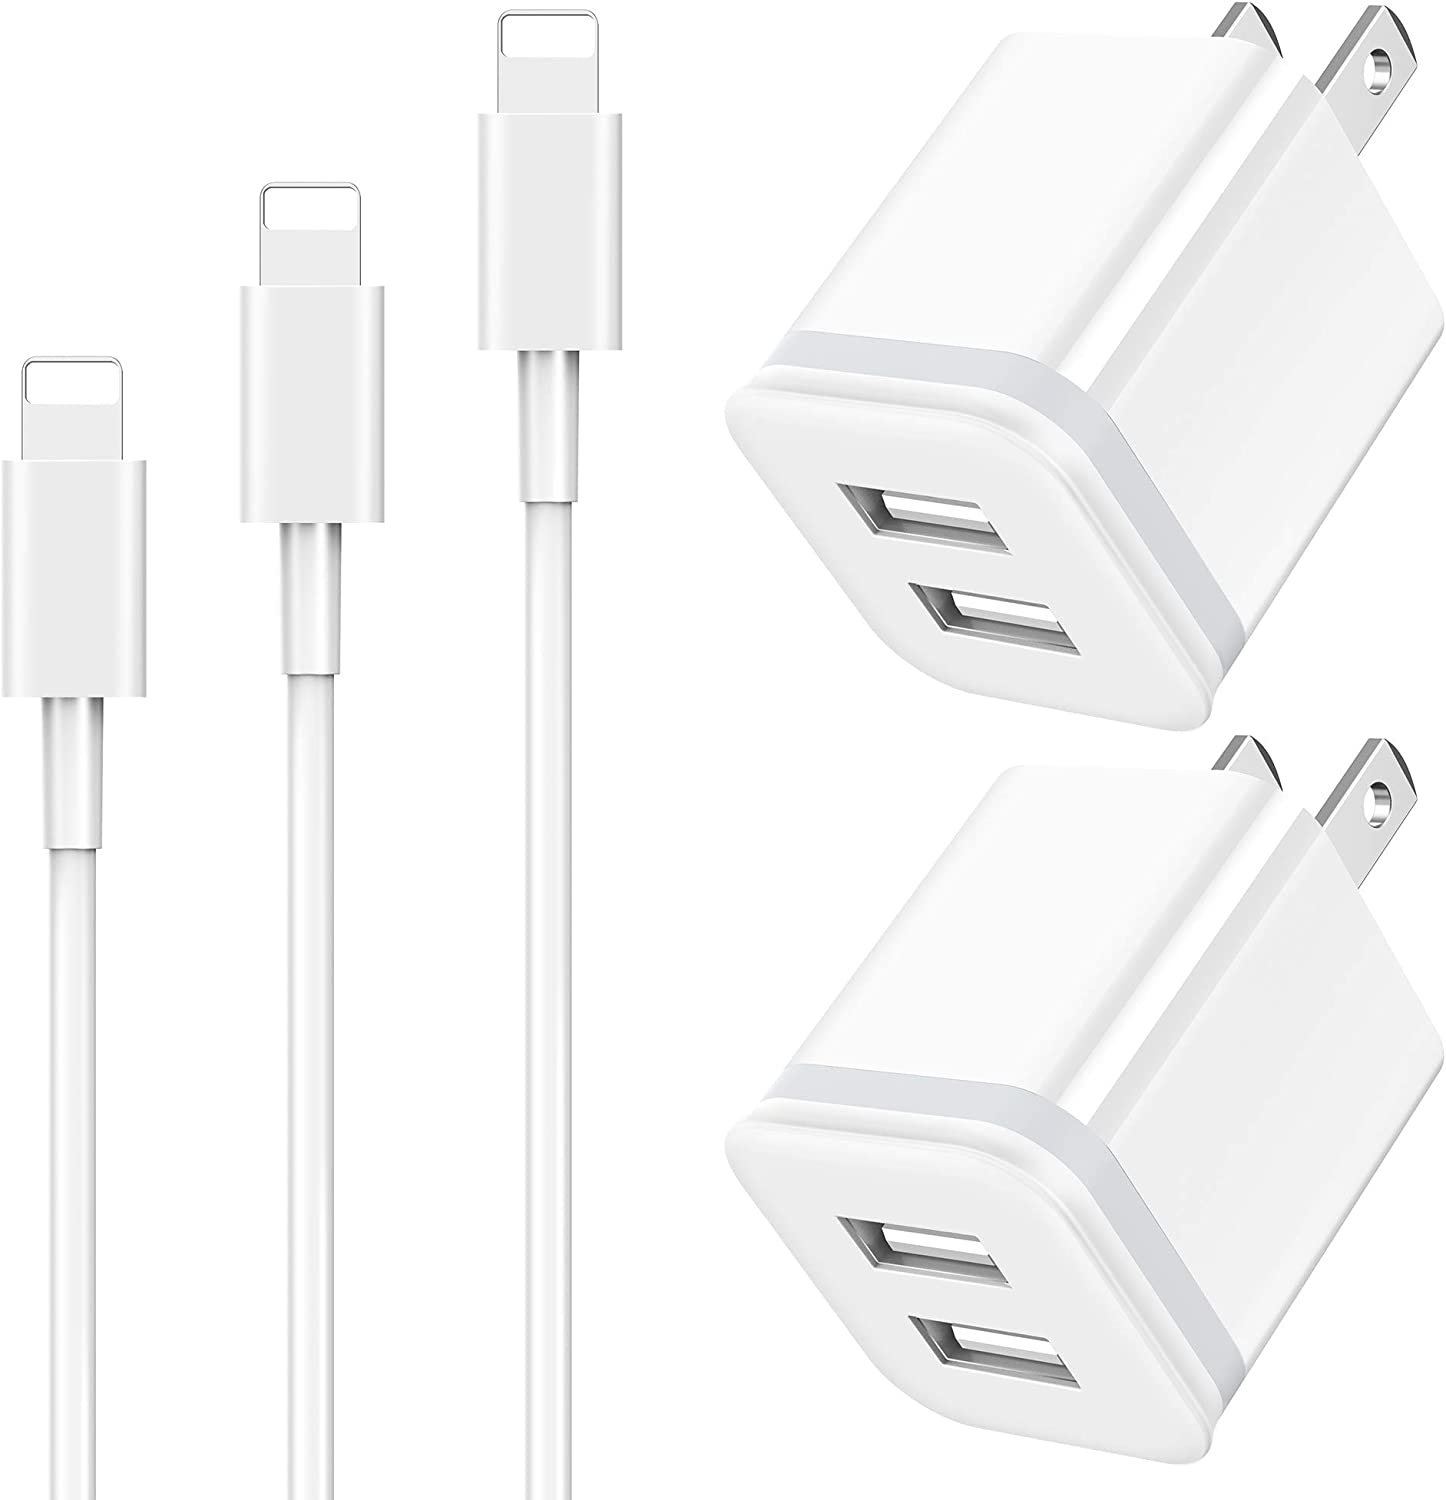 Phone Charger Cable 3ft 6ft 10ft with Wall Plug, LUOATIP 5-Pack Long Charging Cord + Dual Port USB Block Cube Adapter Replacement for iPhone 11 XS/XS Max/XR/X 8/7/6/6S Plus SE/5S/5C, Pad, Pod